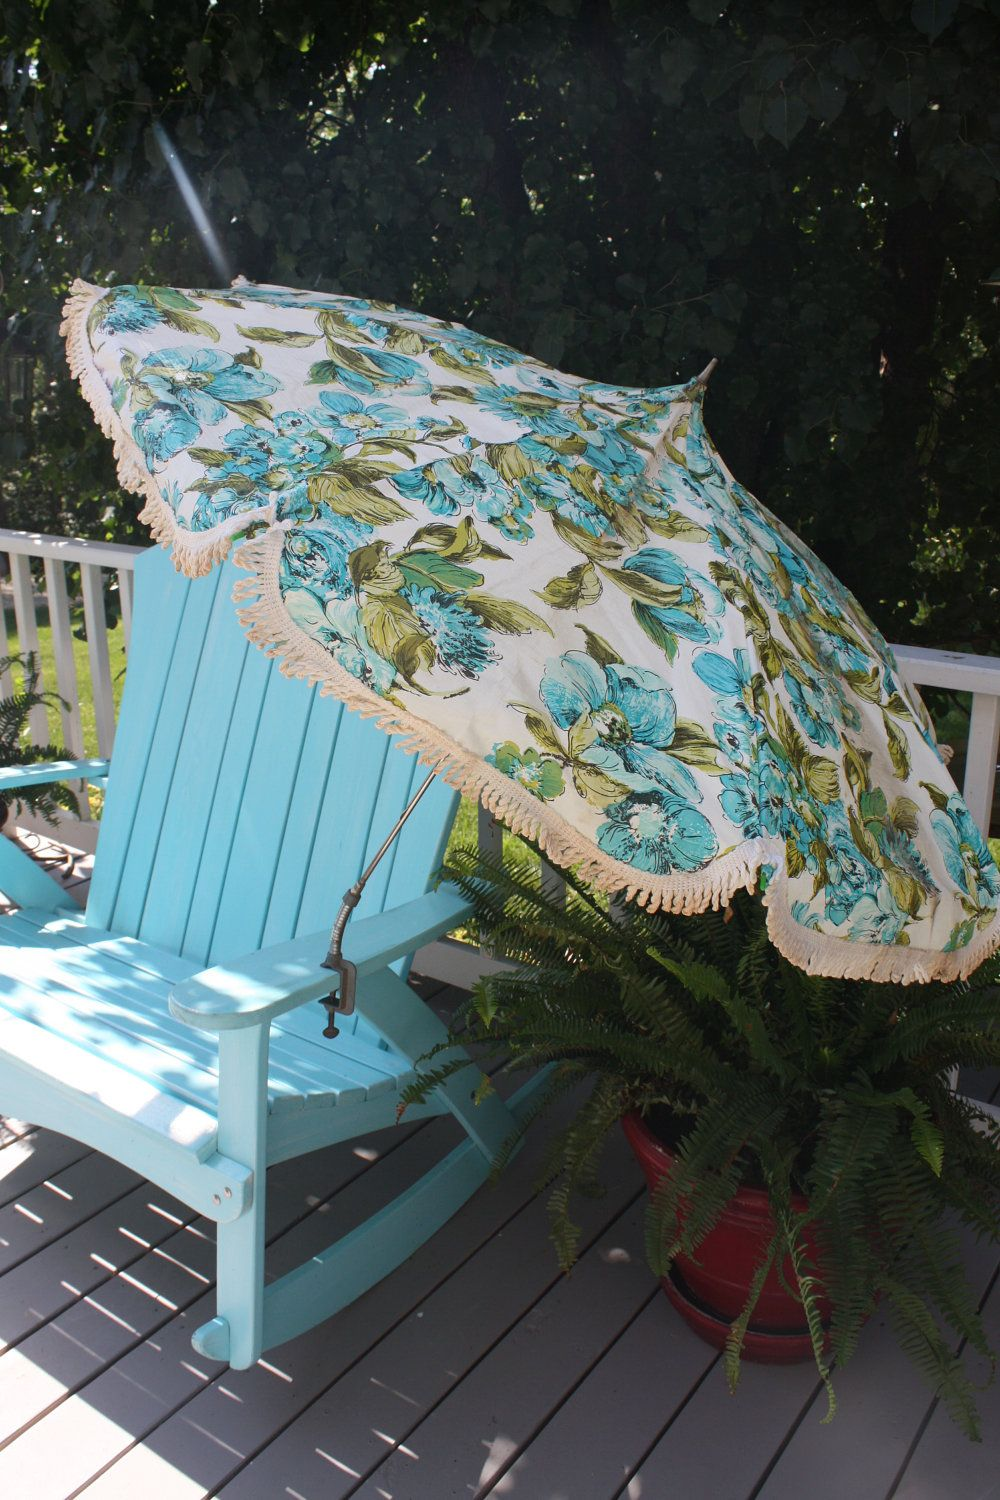 Vintage Mid Century Modern Patio Umbrella Portable For Table Or Chair